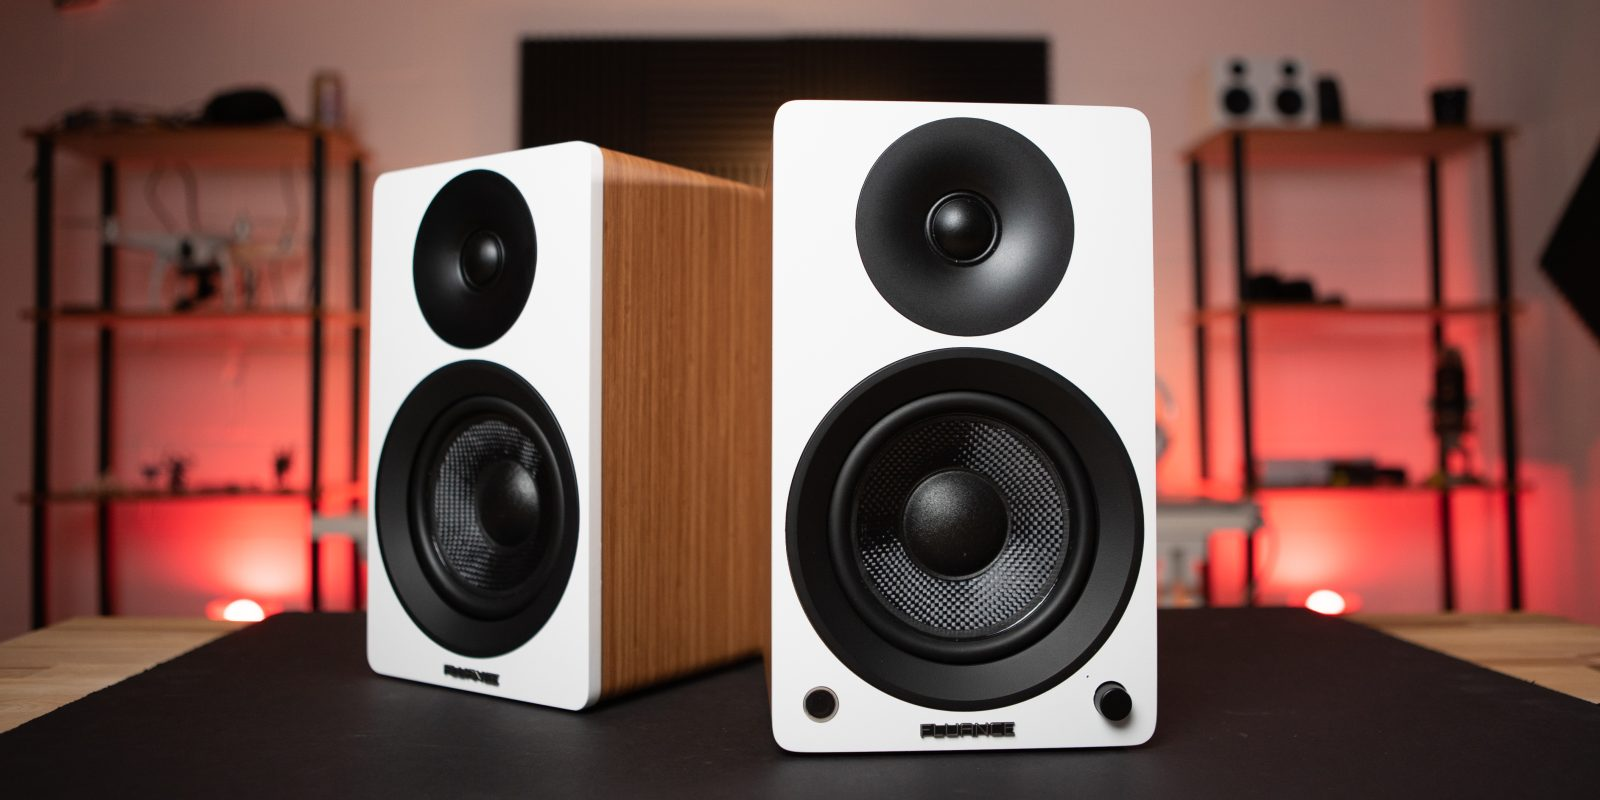 Fluance Ai40 Bookshelf Speaker Review: Incredible sound for just $200 [Video]